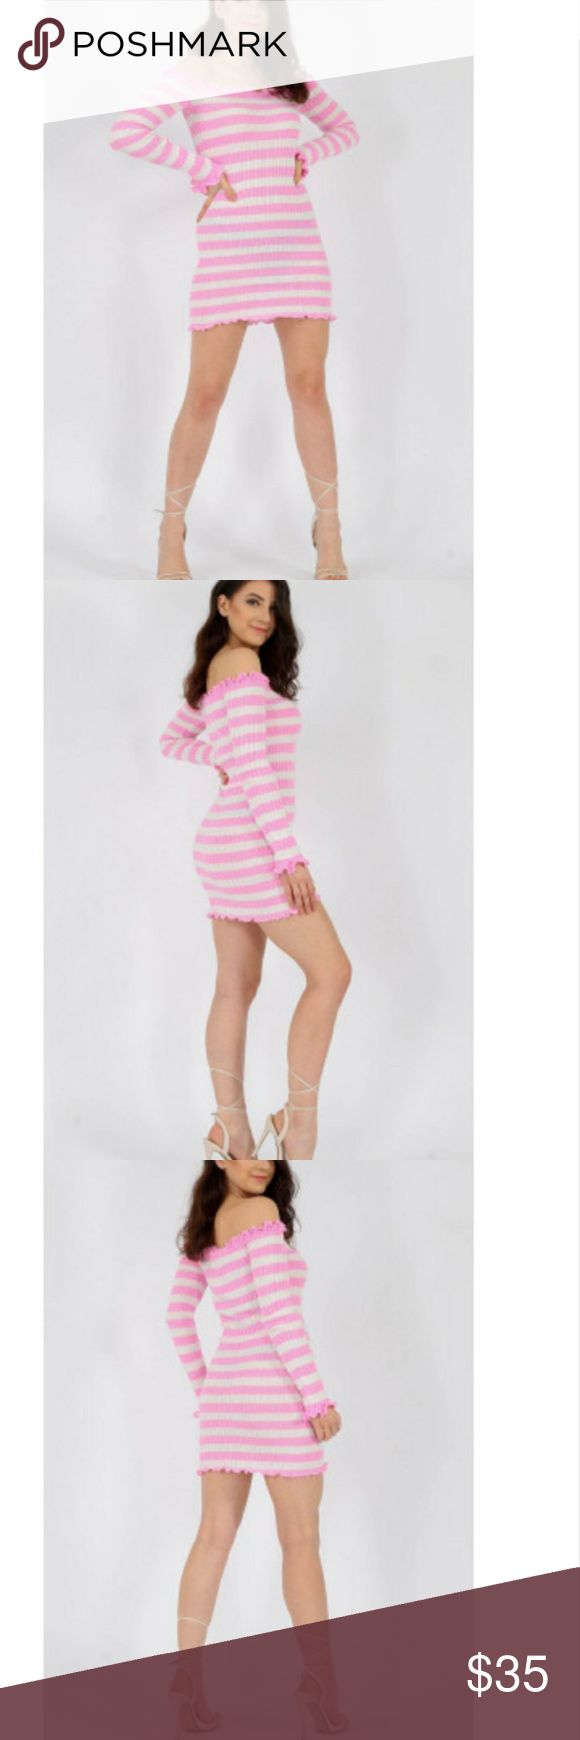 🌷Striped Bodycon Dress💋 🌹Ruffle Bardot Ribbed Bodycon Dress  Long Sleeves💋  🎊Knitted Ribed Fabric  Frill Hem Detail🔥  Length: 30 inches   50%Cotton, 50%Acrylic  Model wearing a size UK S / US S  S (4-6) Dresses